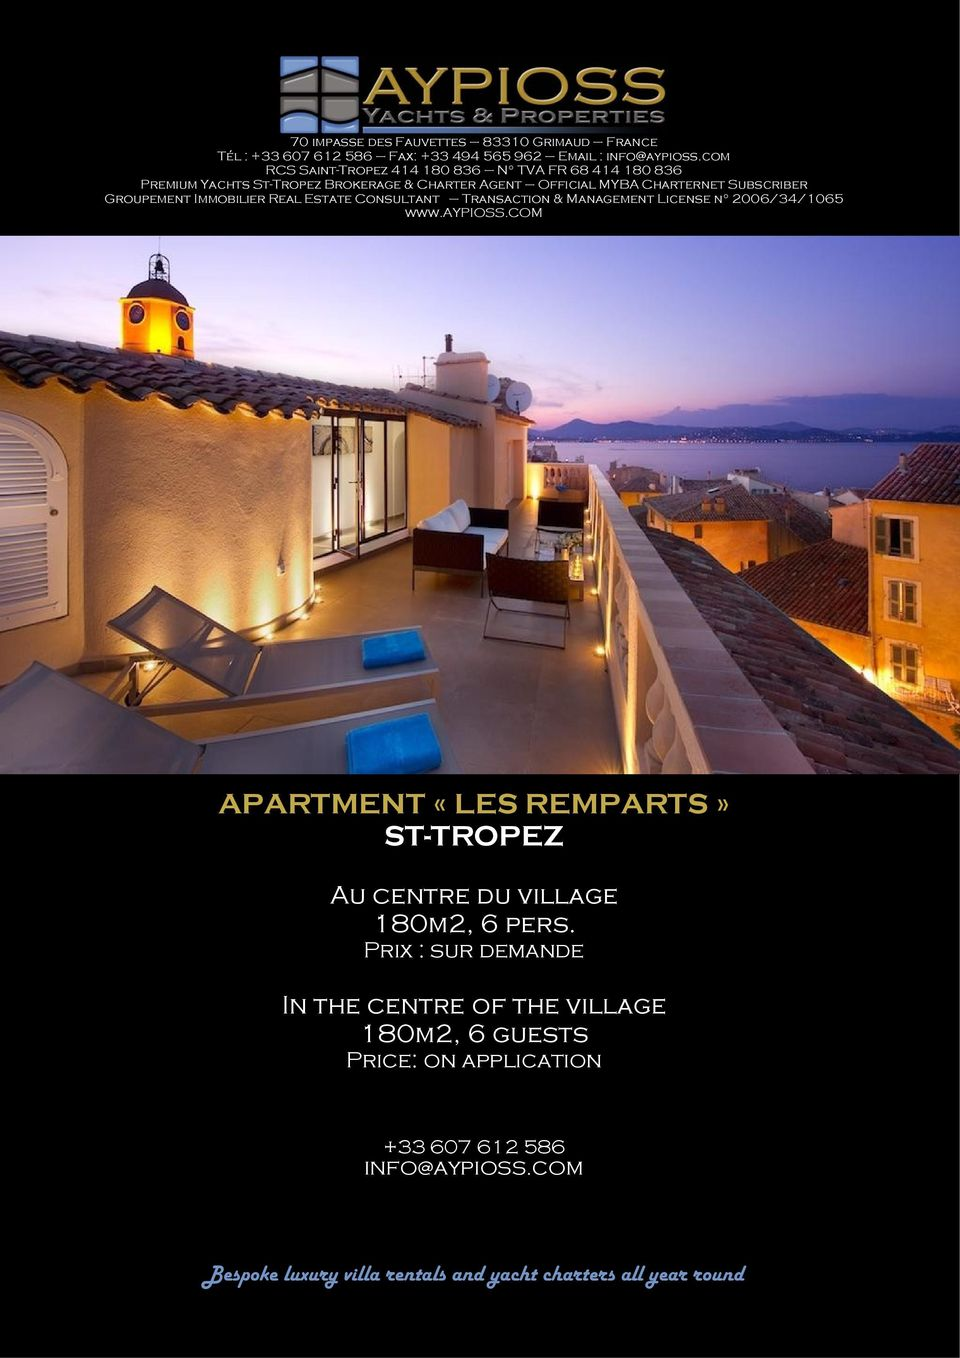 Groupement Immobilier Real Estate Consultant Transaction & Management License n 2006/34/1065 www.aypioss.